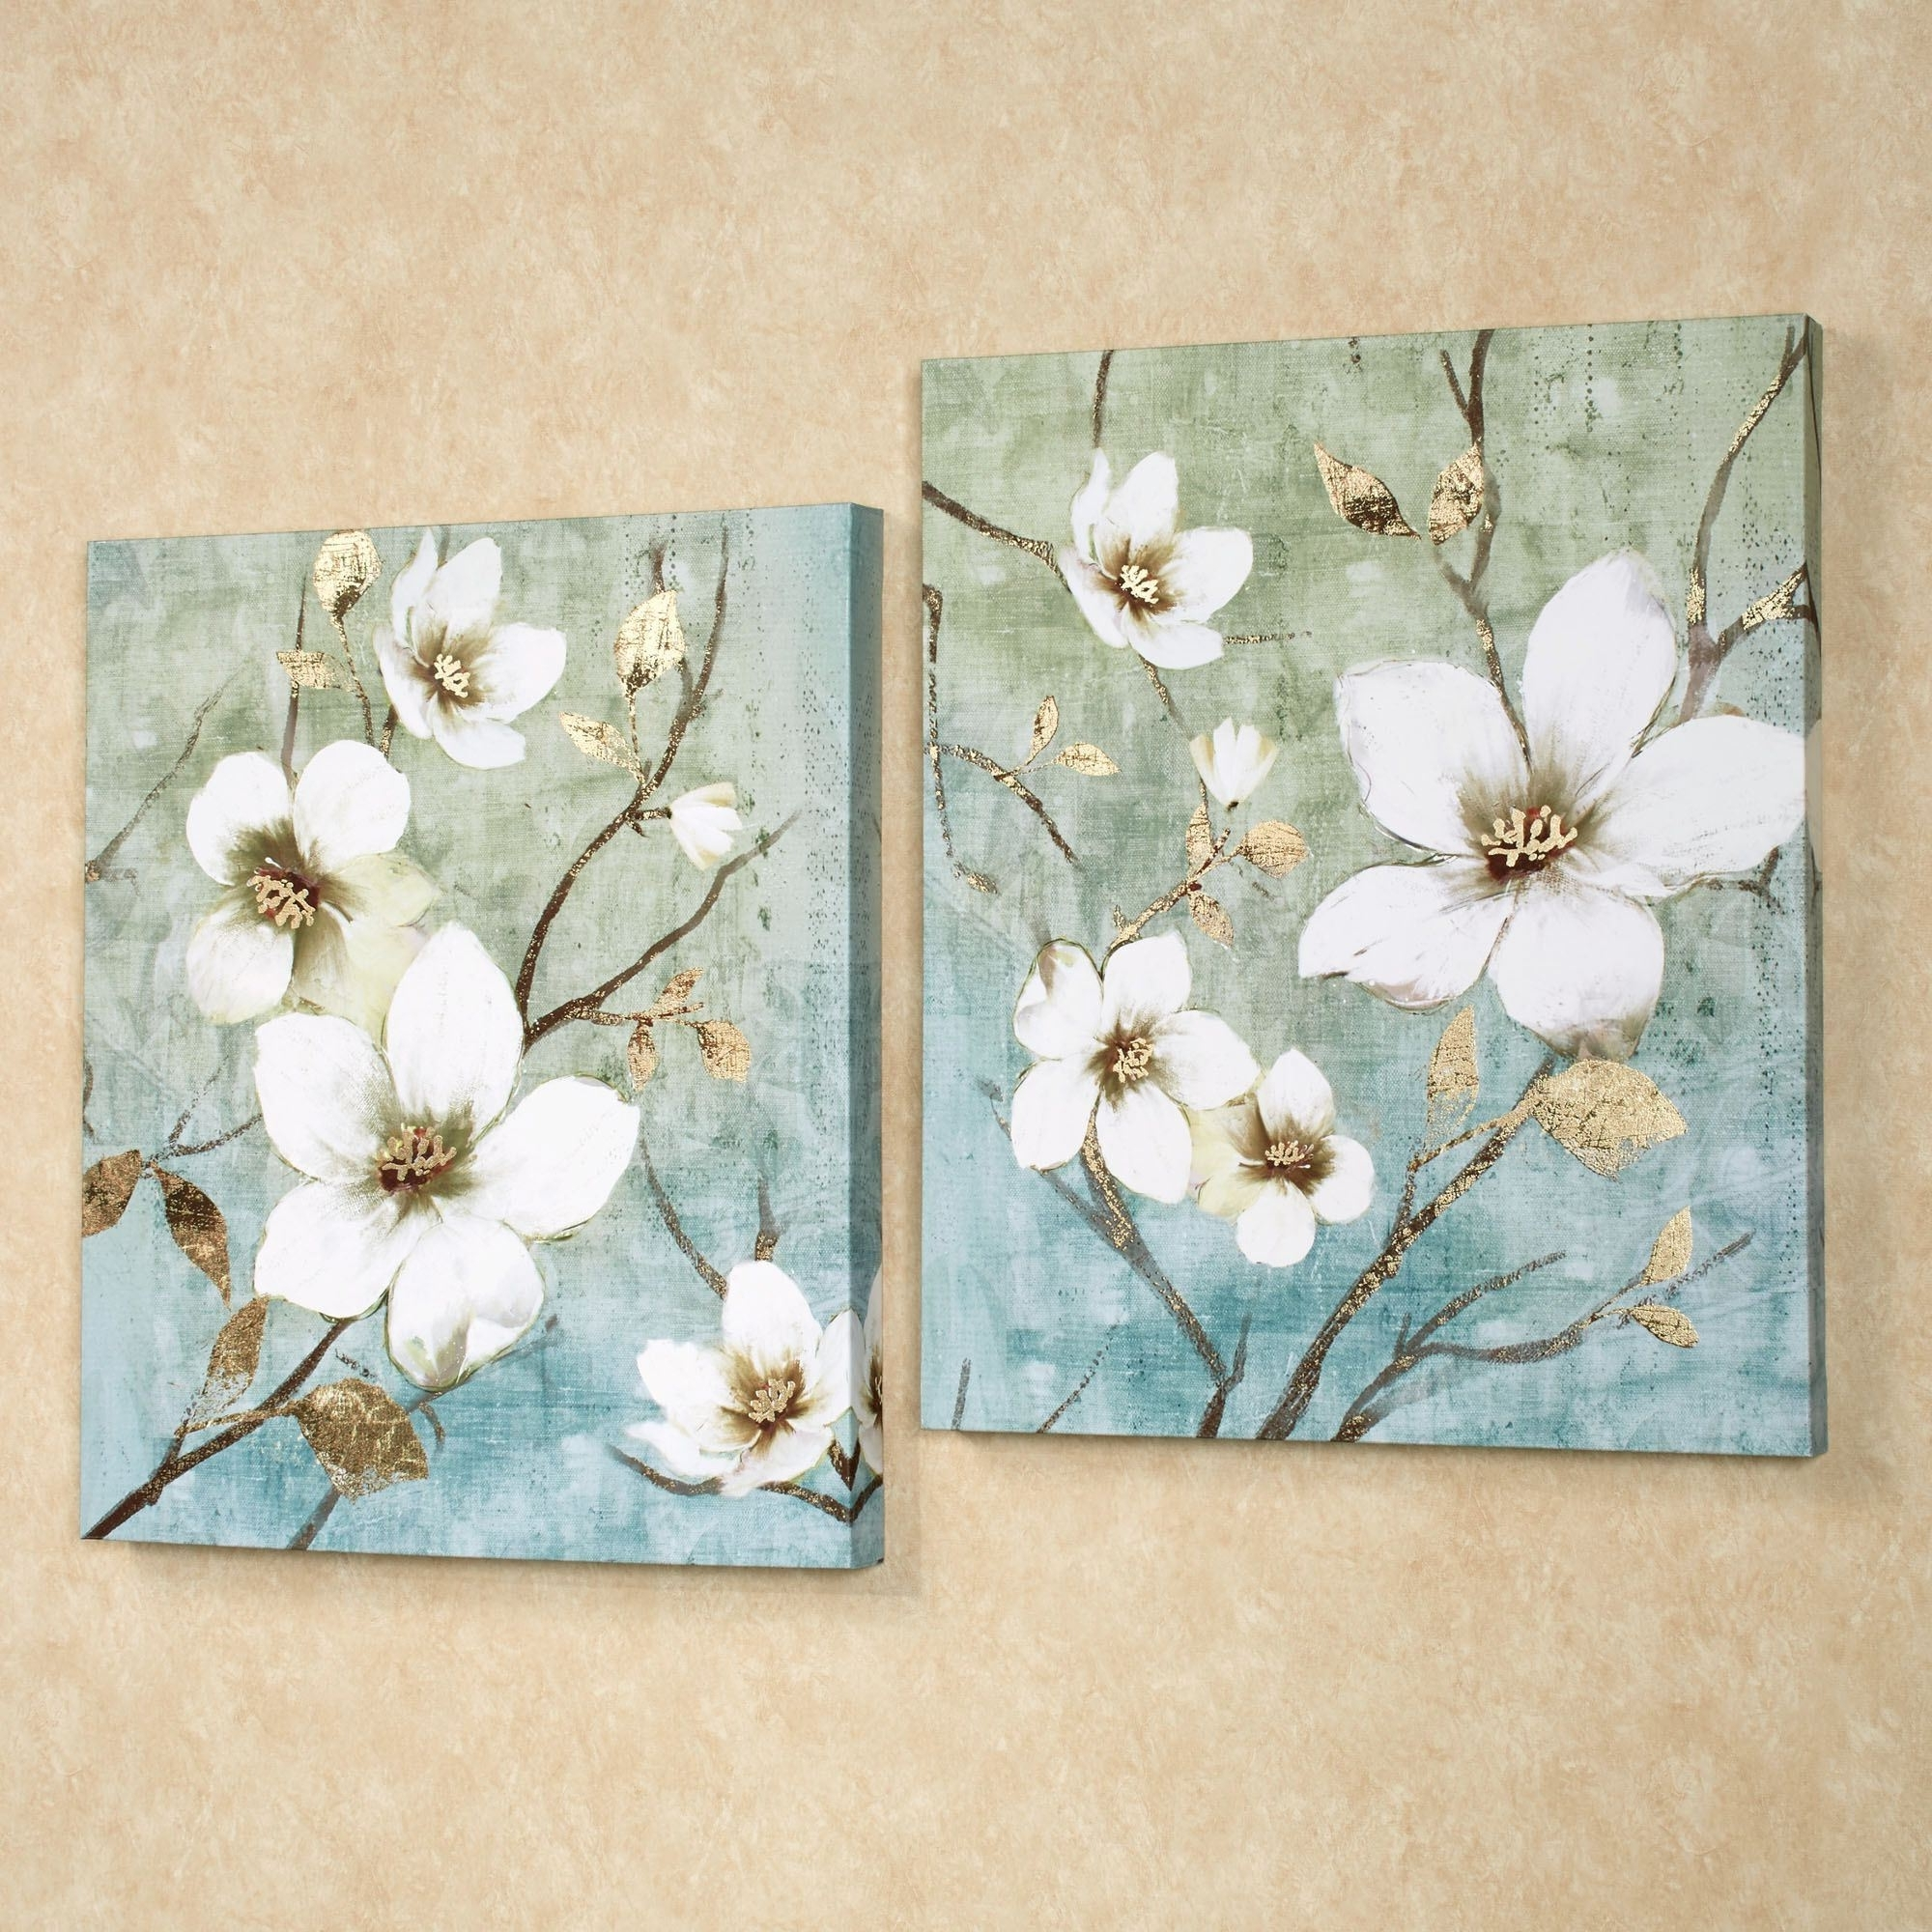 In Bloom Floral Canvas Wall Art Set With Most Recent Canvas Wall Art Of Flowers (View 9 of 15)